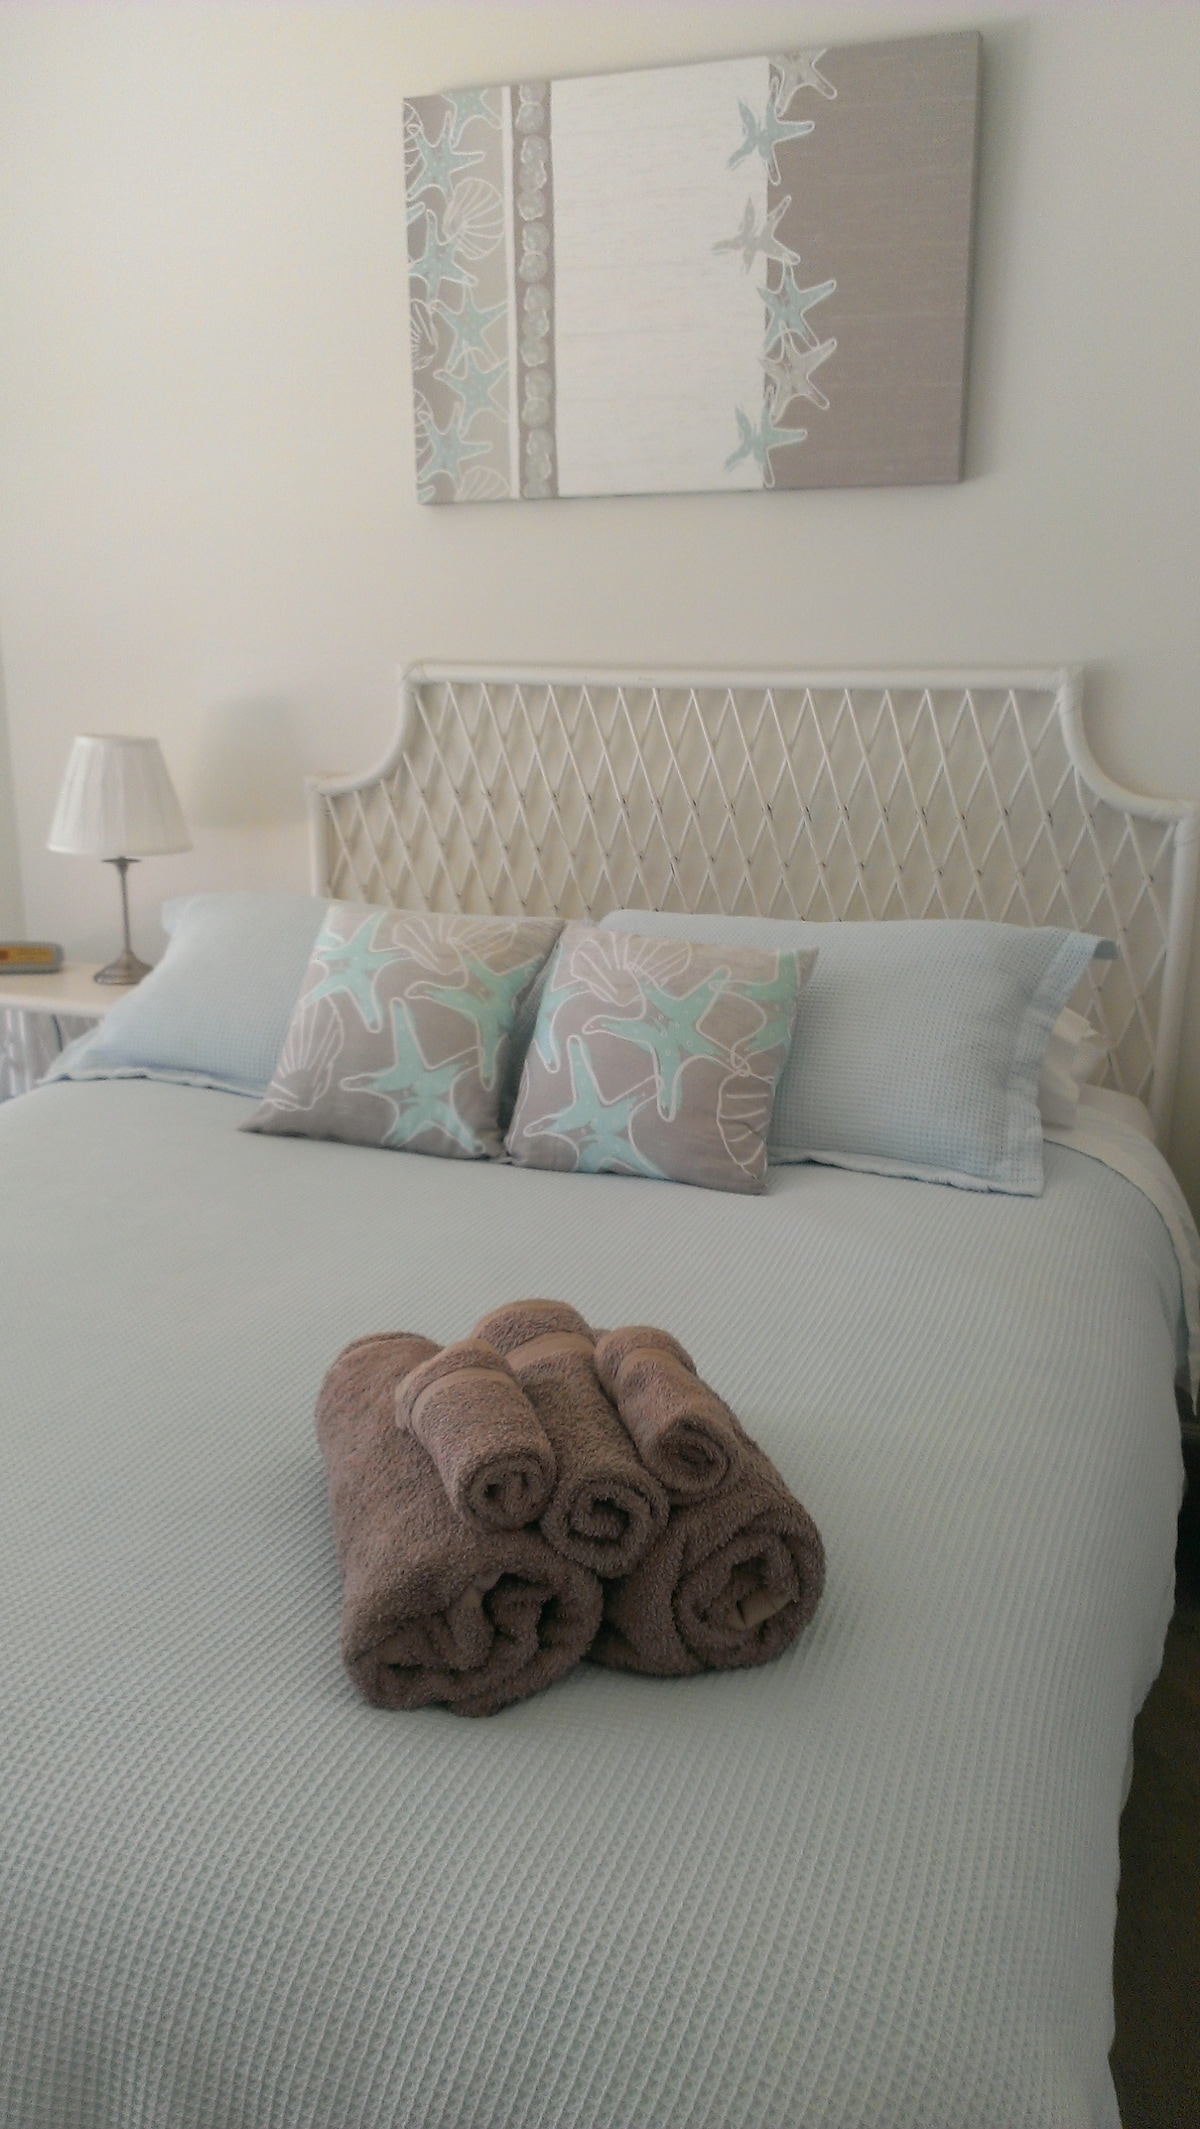 Come & stay in beautiful Terrigal